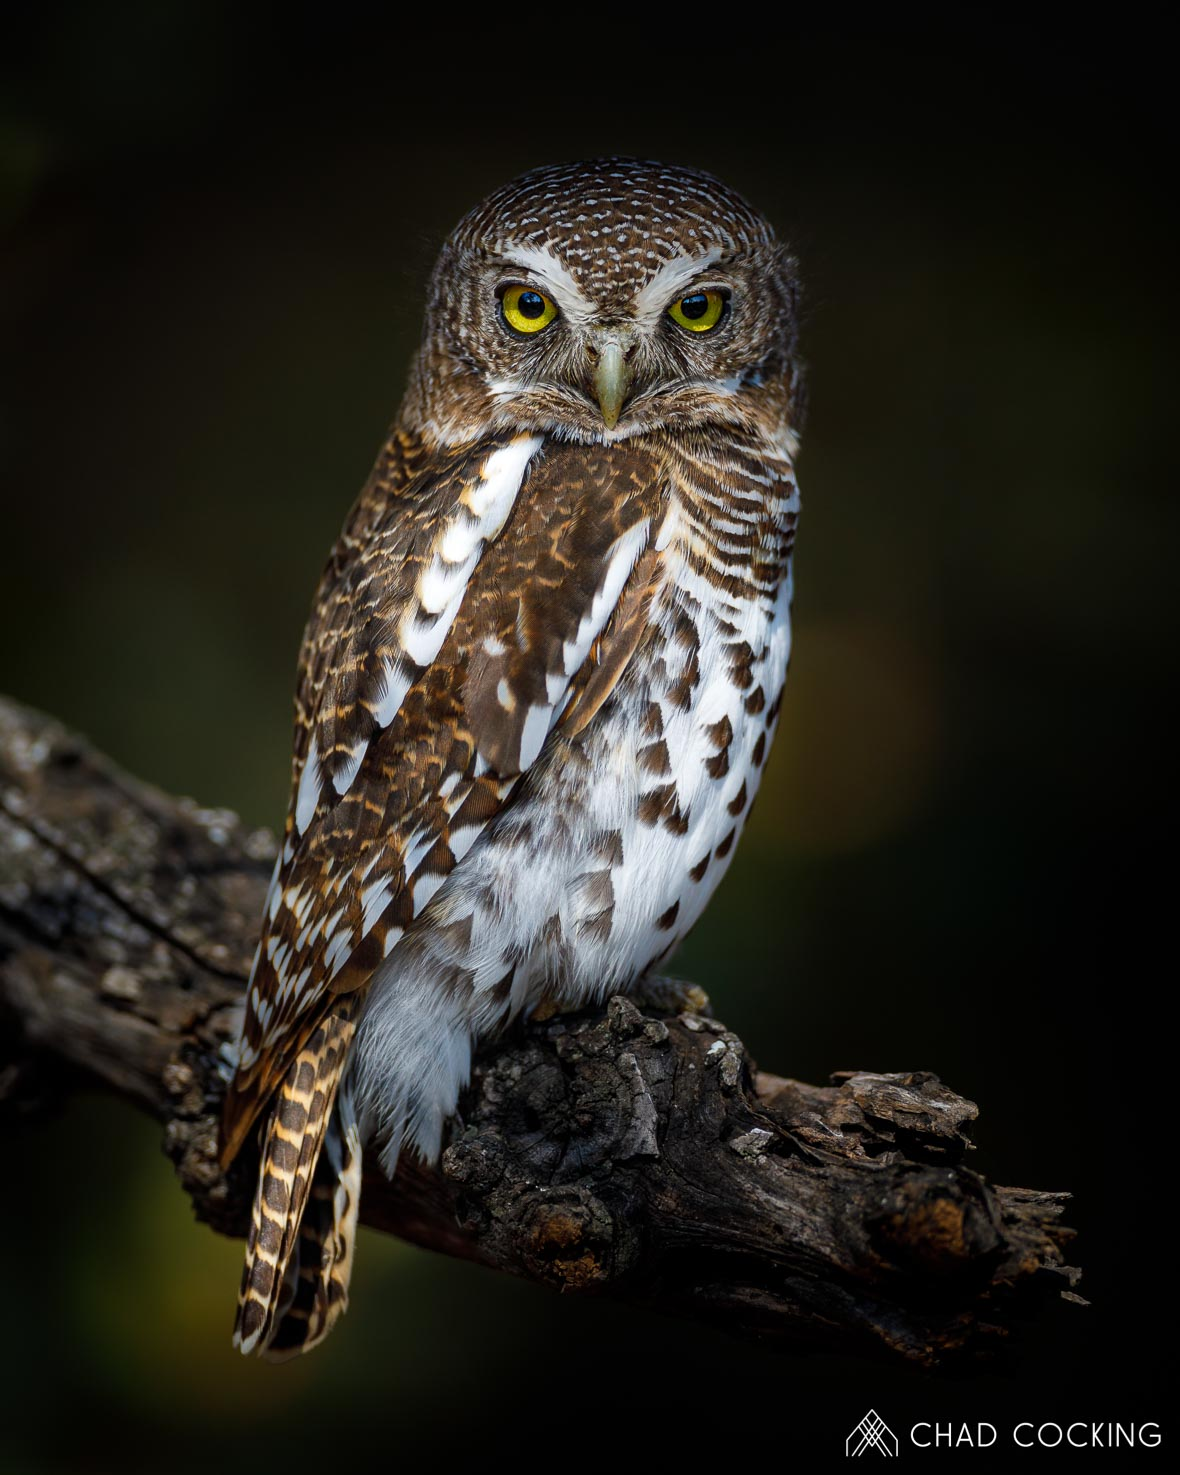 Barred Owlet at Tanda Tula in the Timbavati Game Reserve, part of the Greater Kruger National Park, South Africa - Photo credit: Chad Cocking